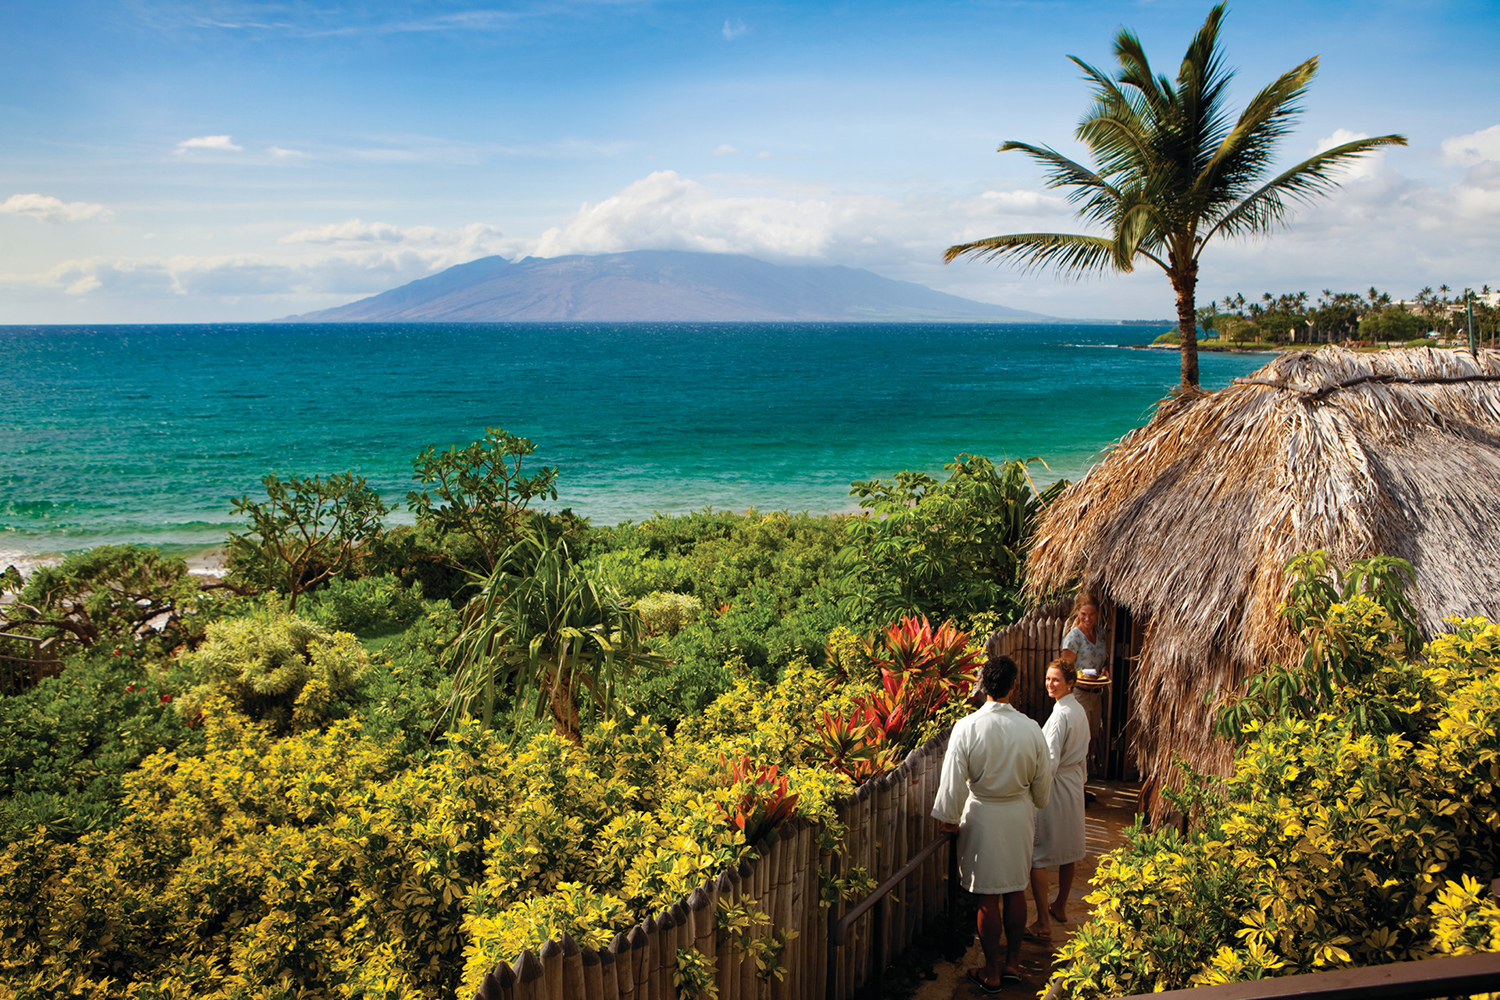 The Spa at Four Seasons Resort Maui at Wailea has oceanside hales (thatched huts).